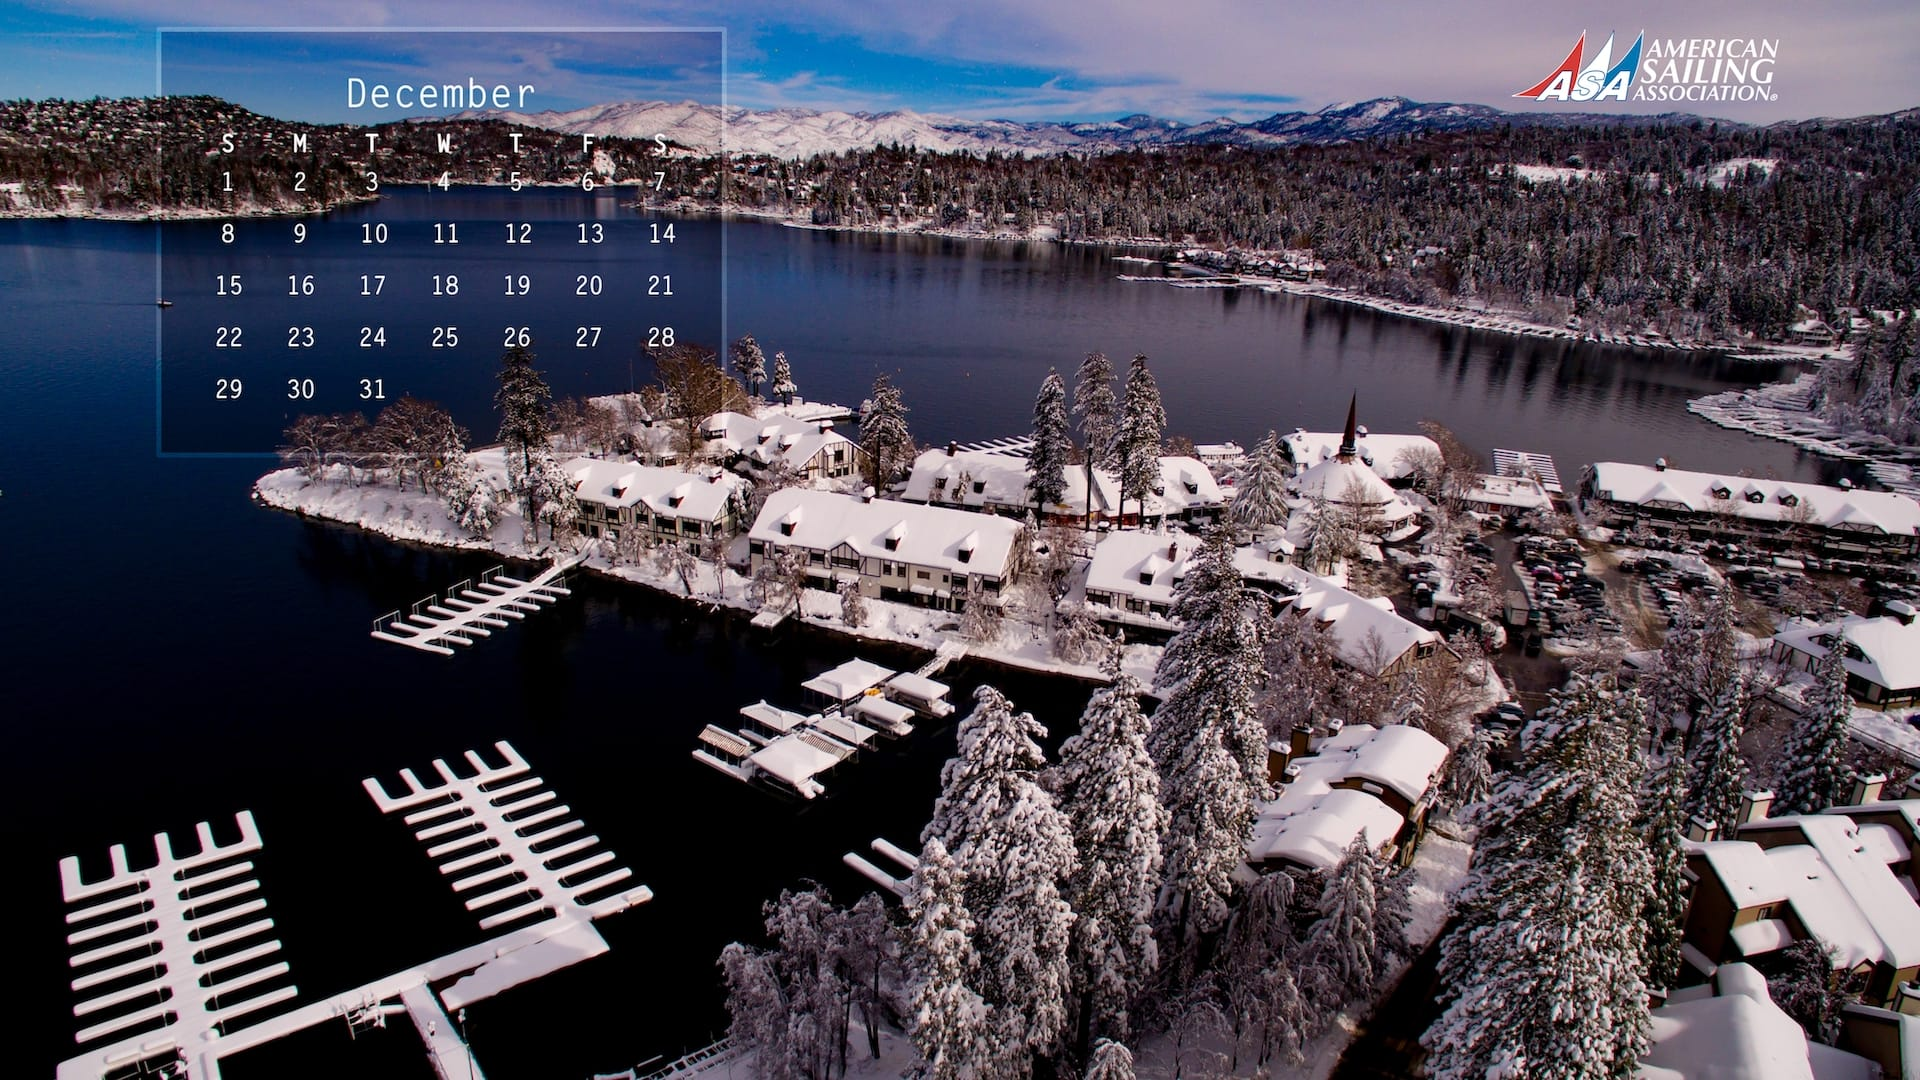 ASA Desktop Wallpaper Sailing Calendar - December 2019